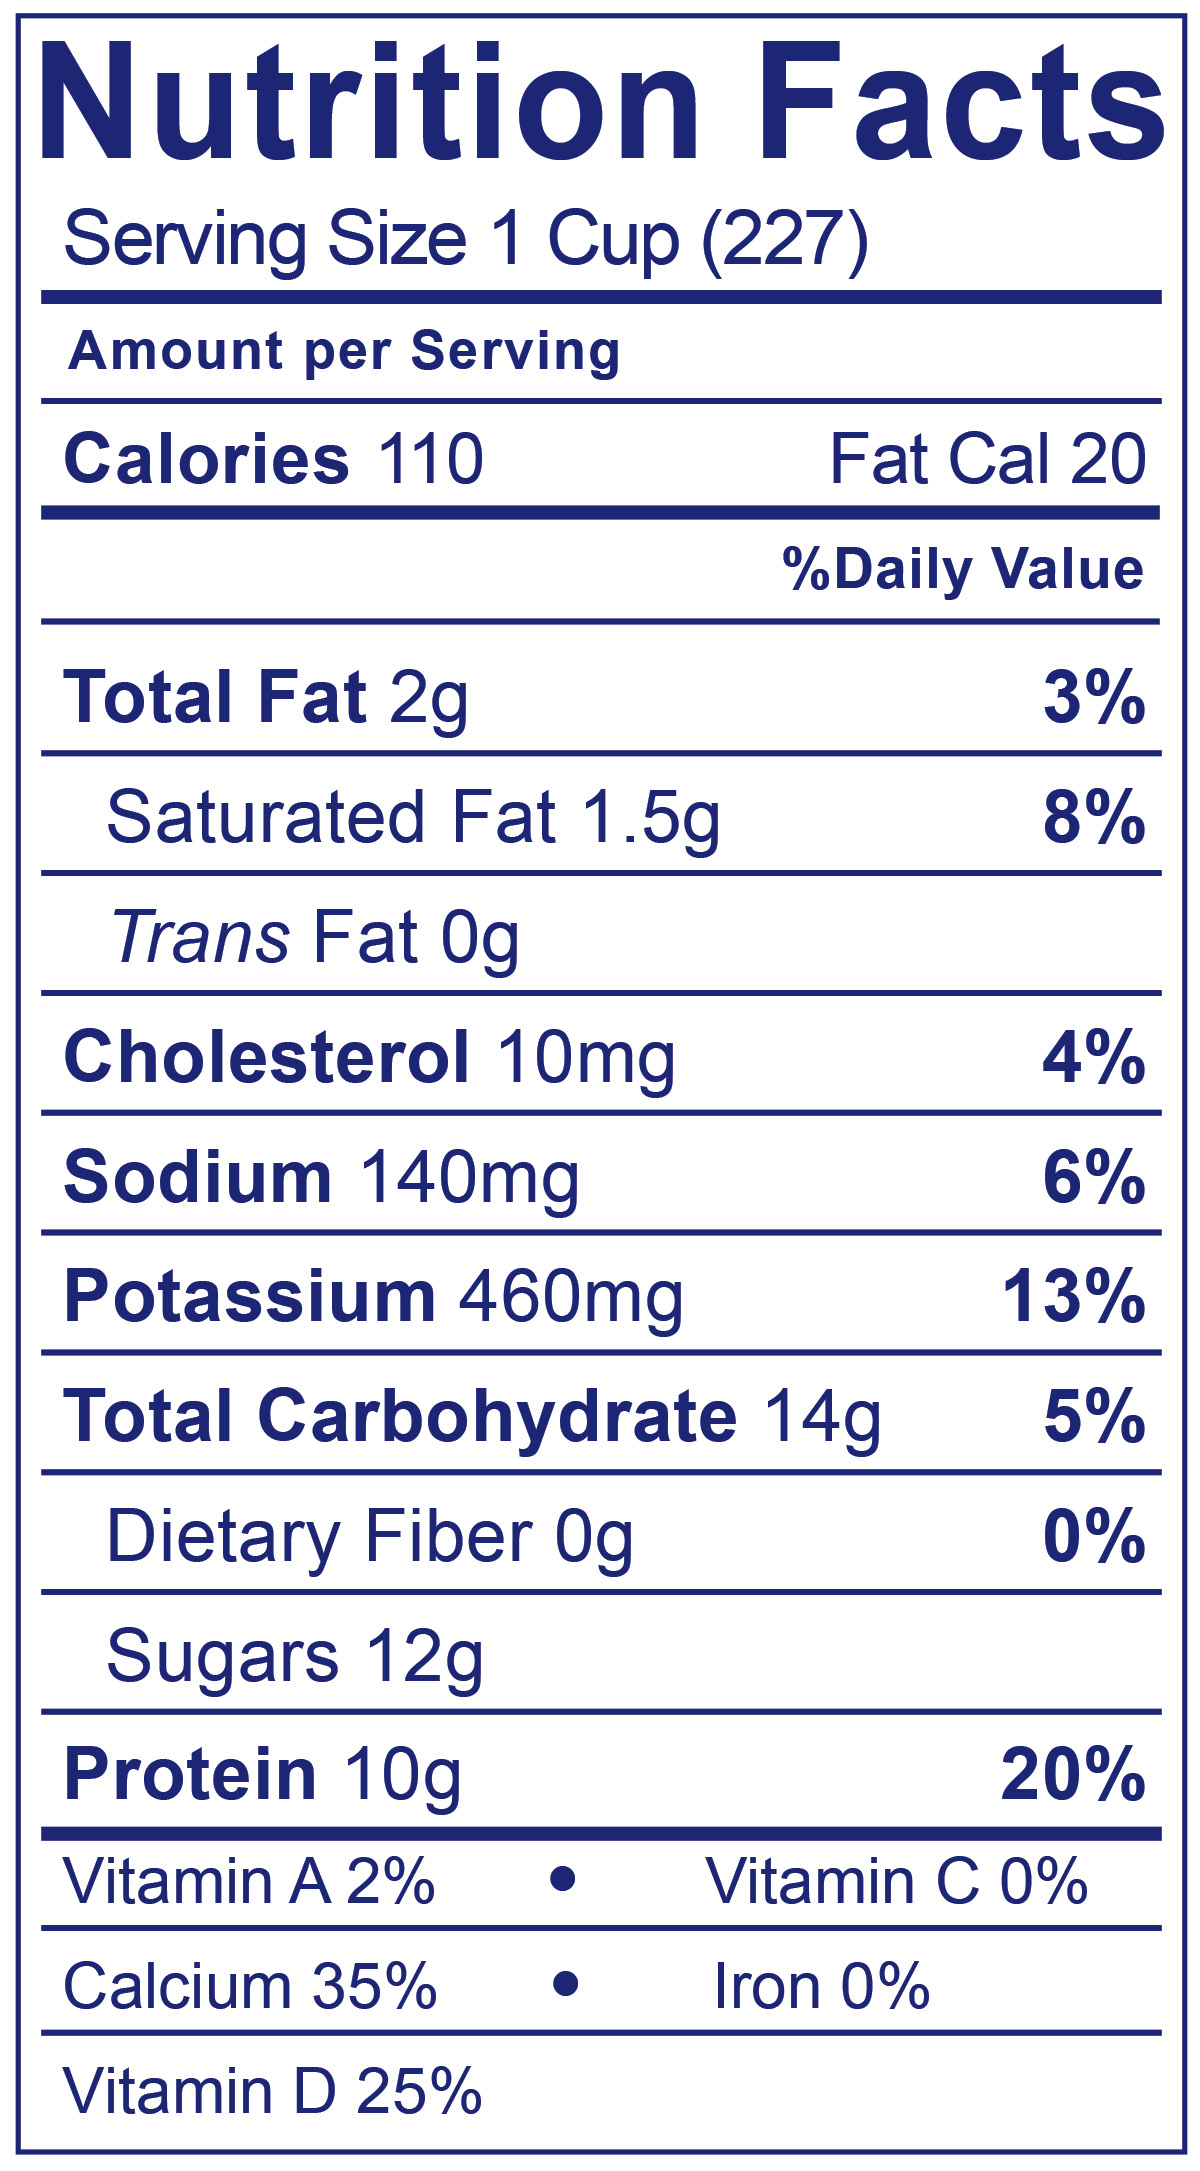 Low Fat Smooth & Creamy Plain - Nutrition Facts